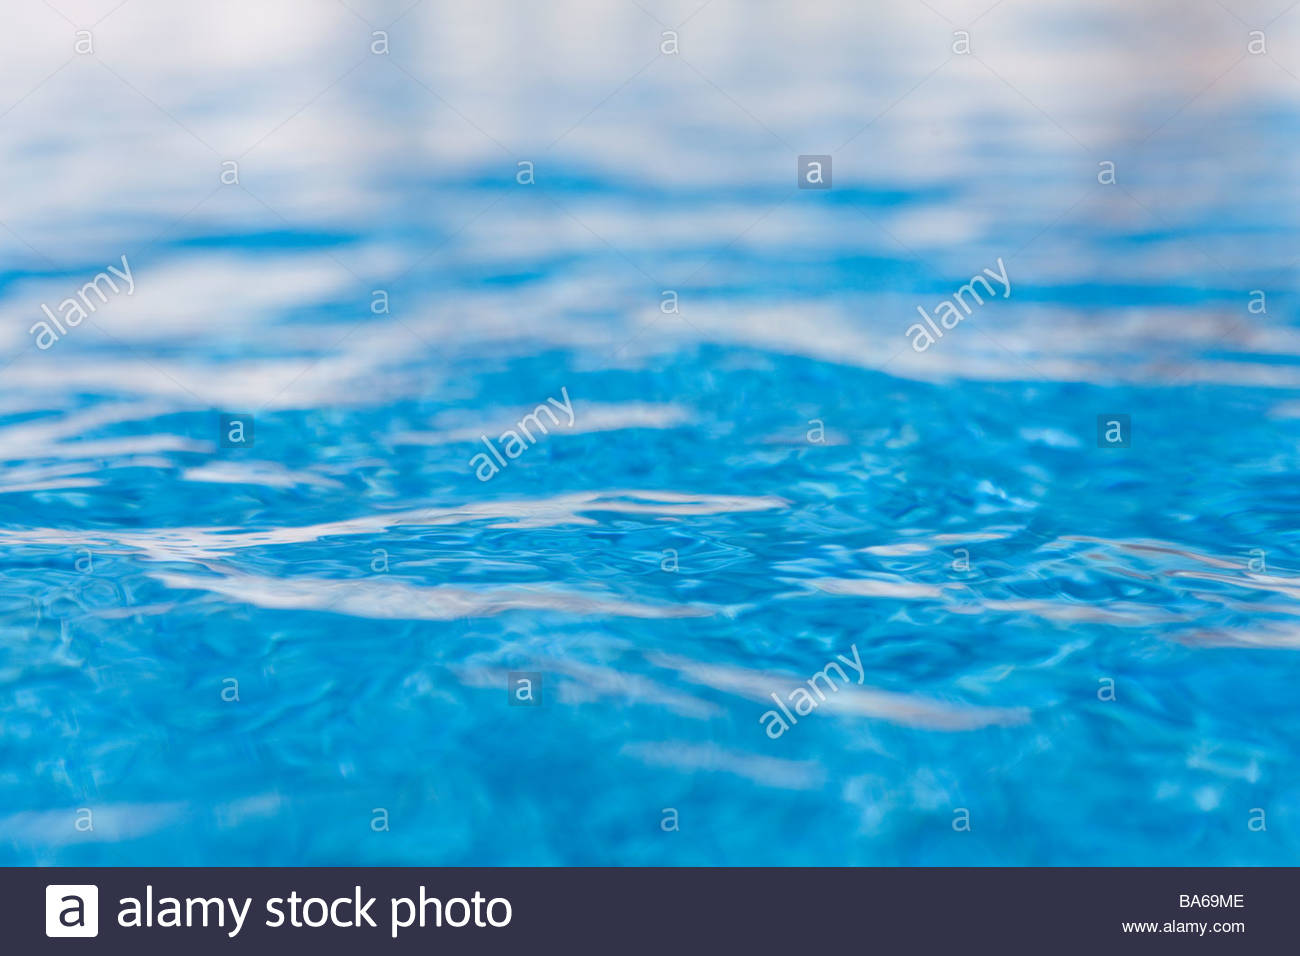 Close up of shimmering water in swimming pool - Stock Image